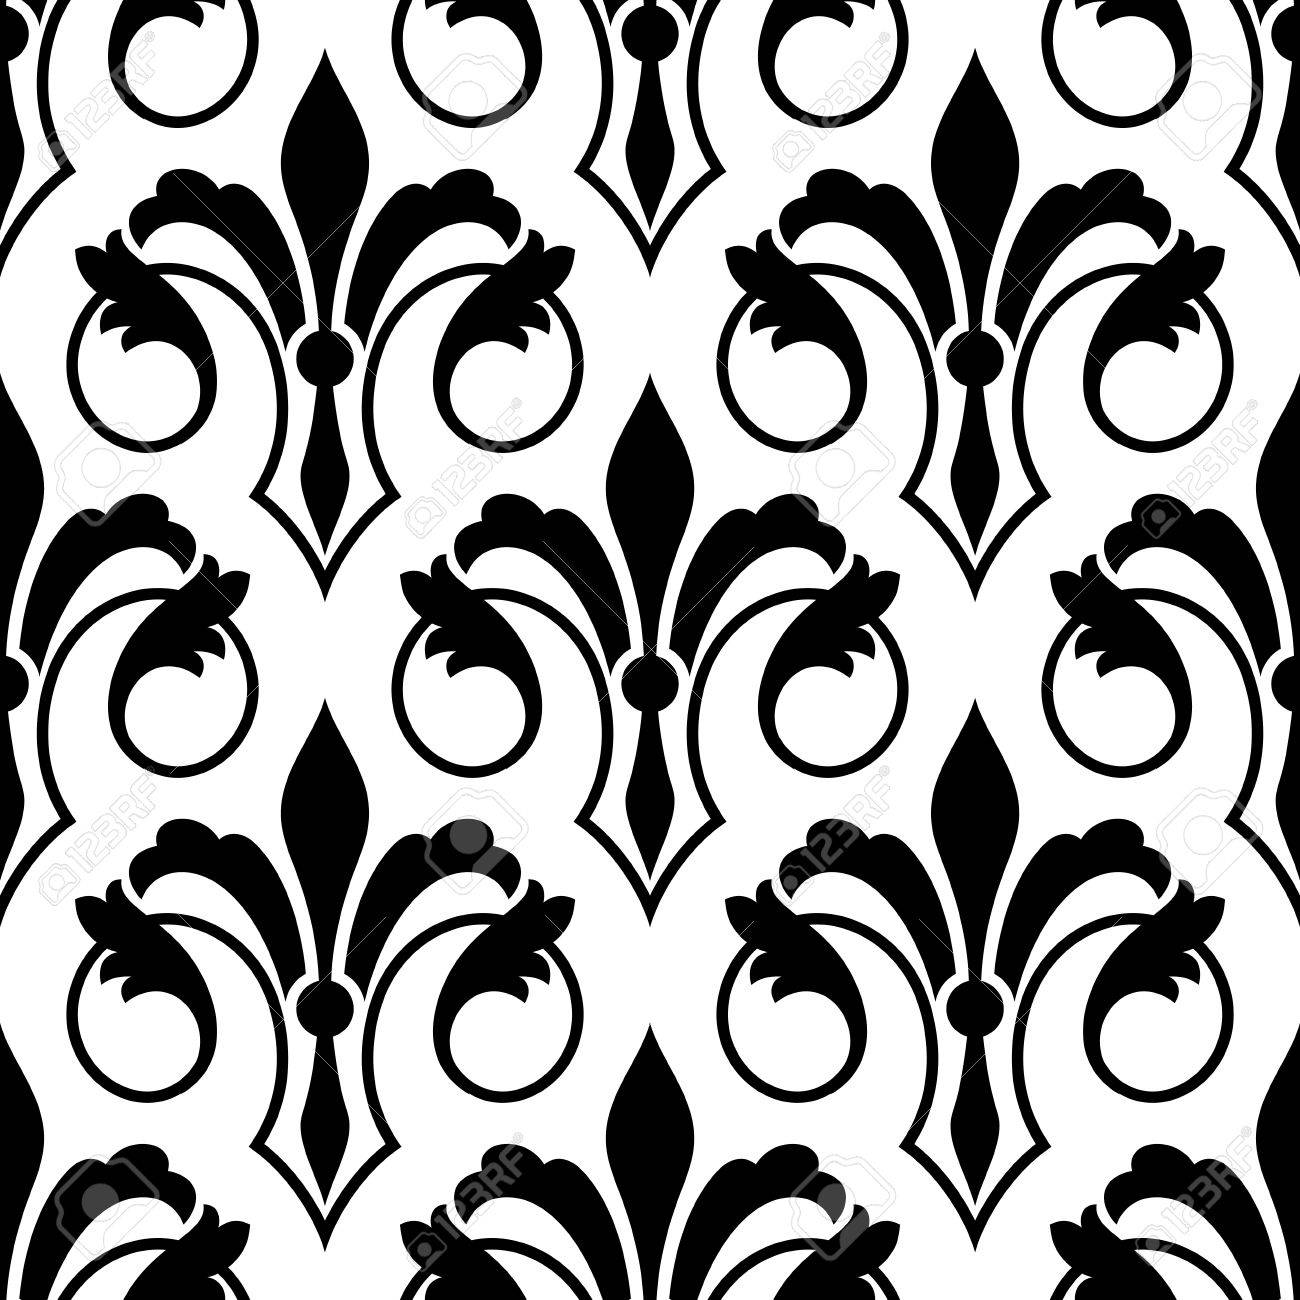 fleur de lys seamless bakground pattern with ornate motifs with